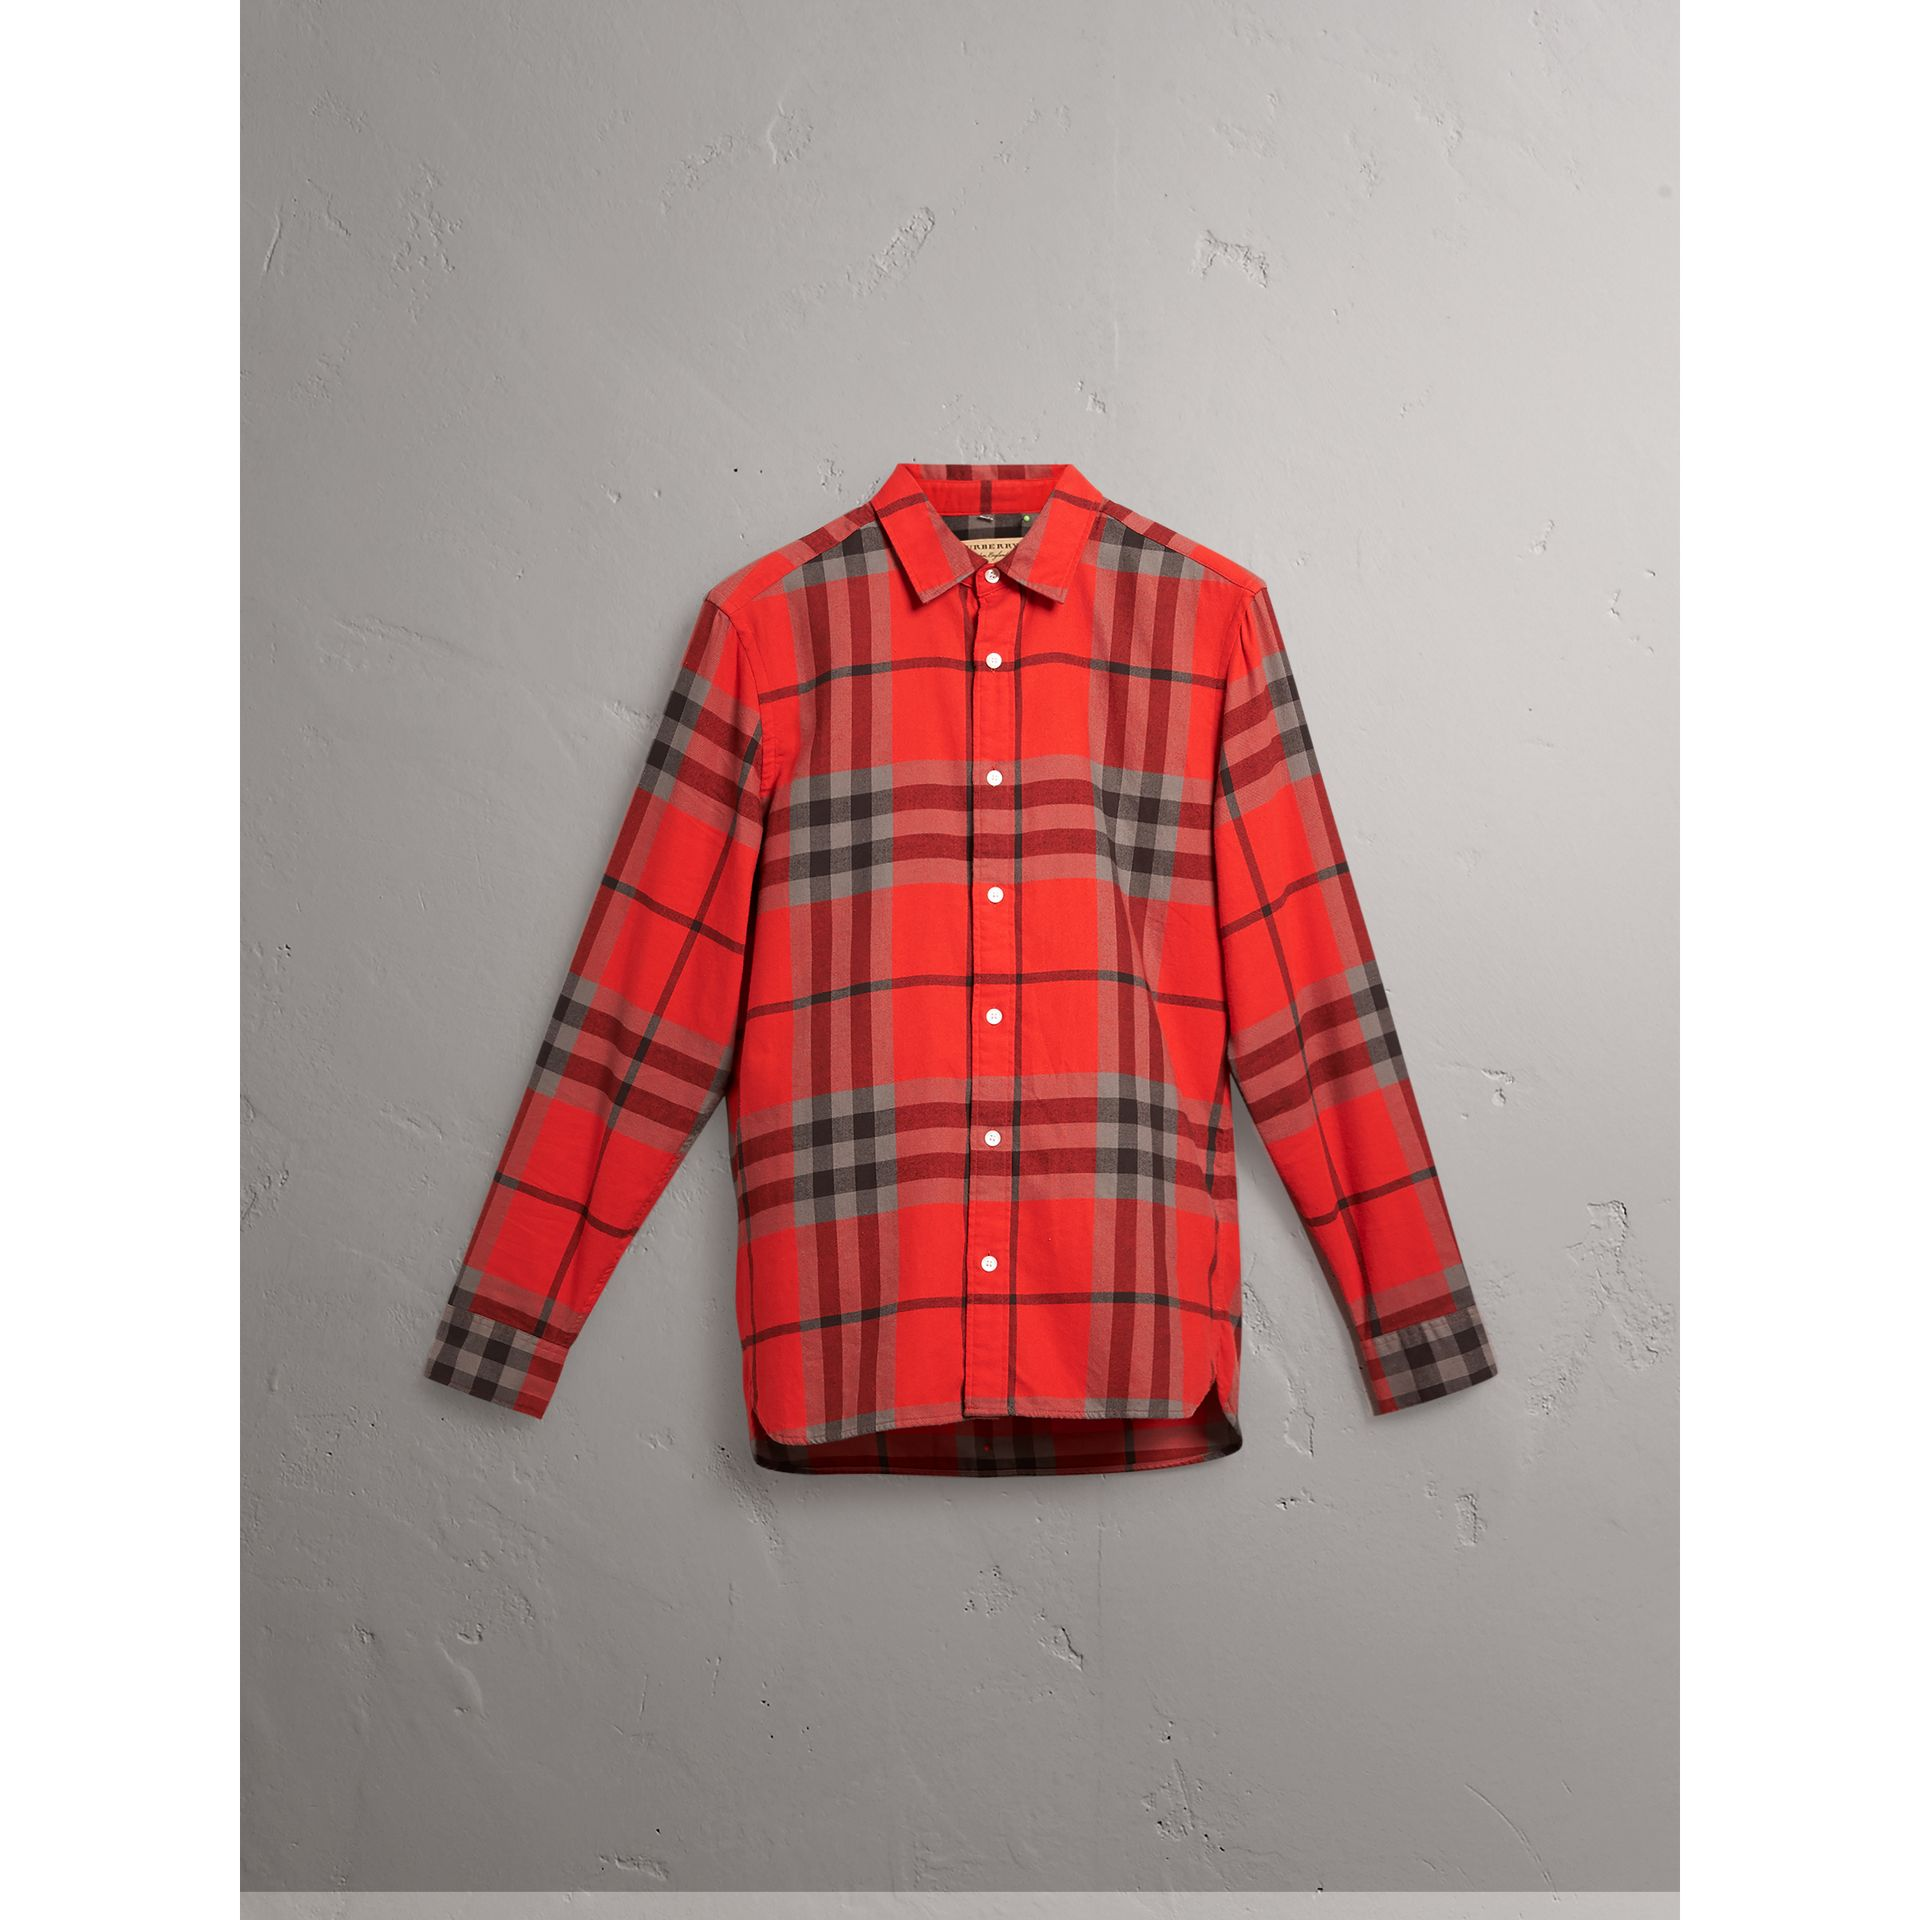 Burberry Bright Red Check Cotton Flannel Shirt